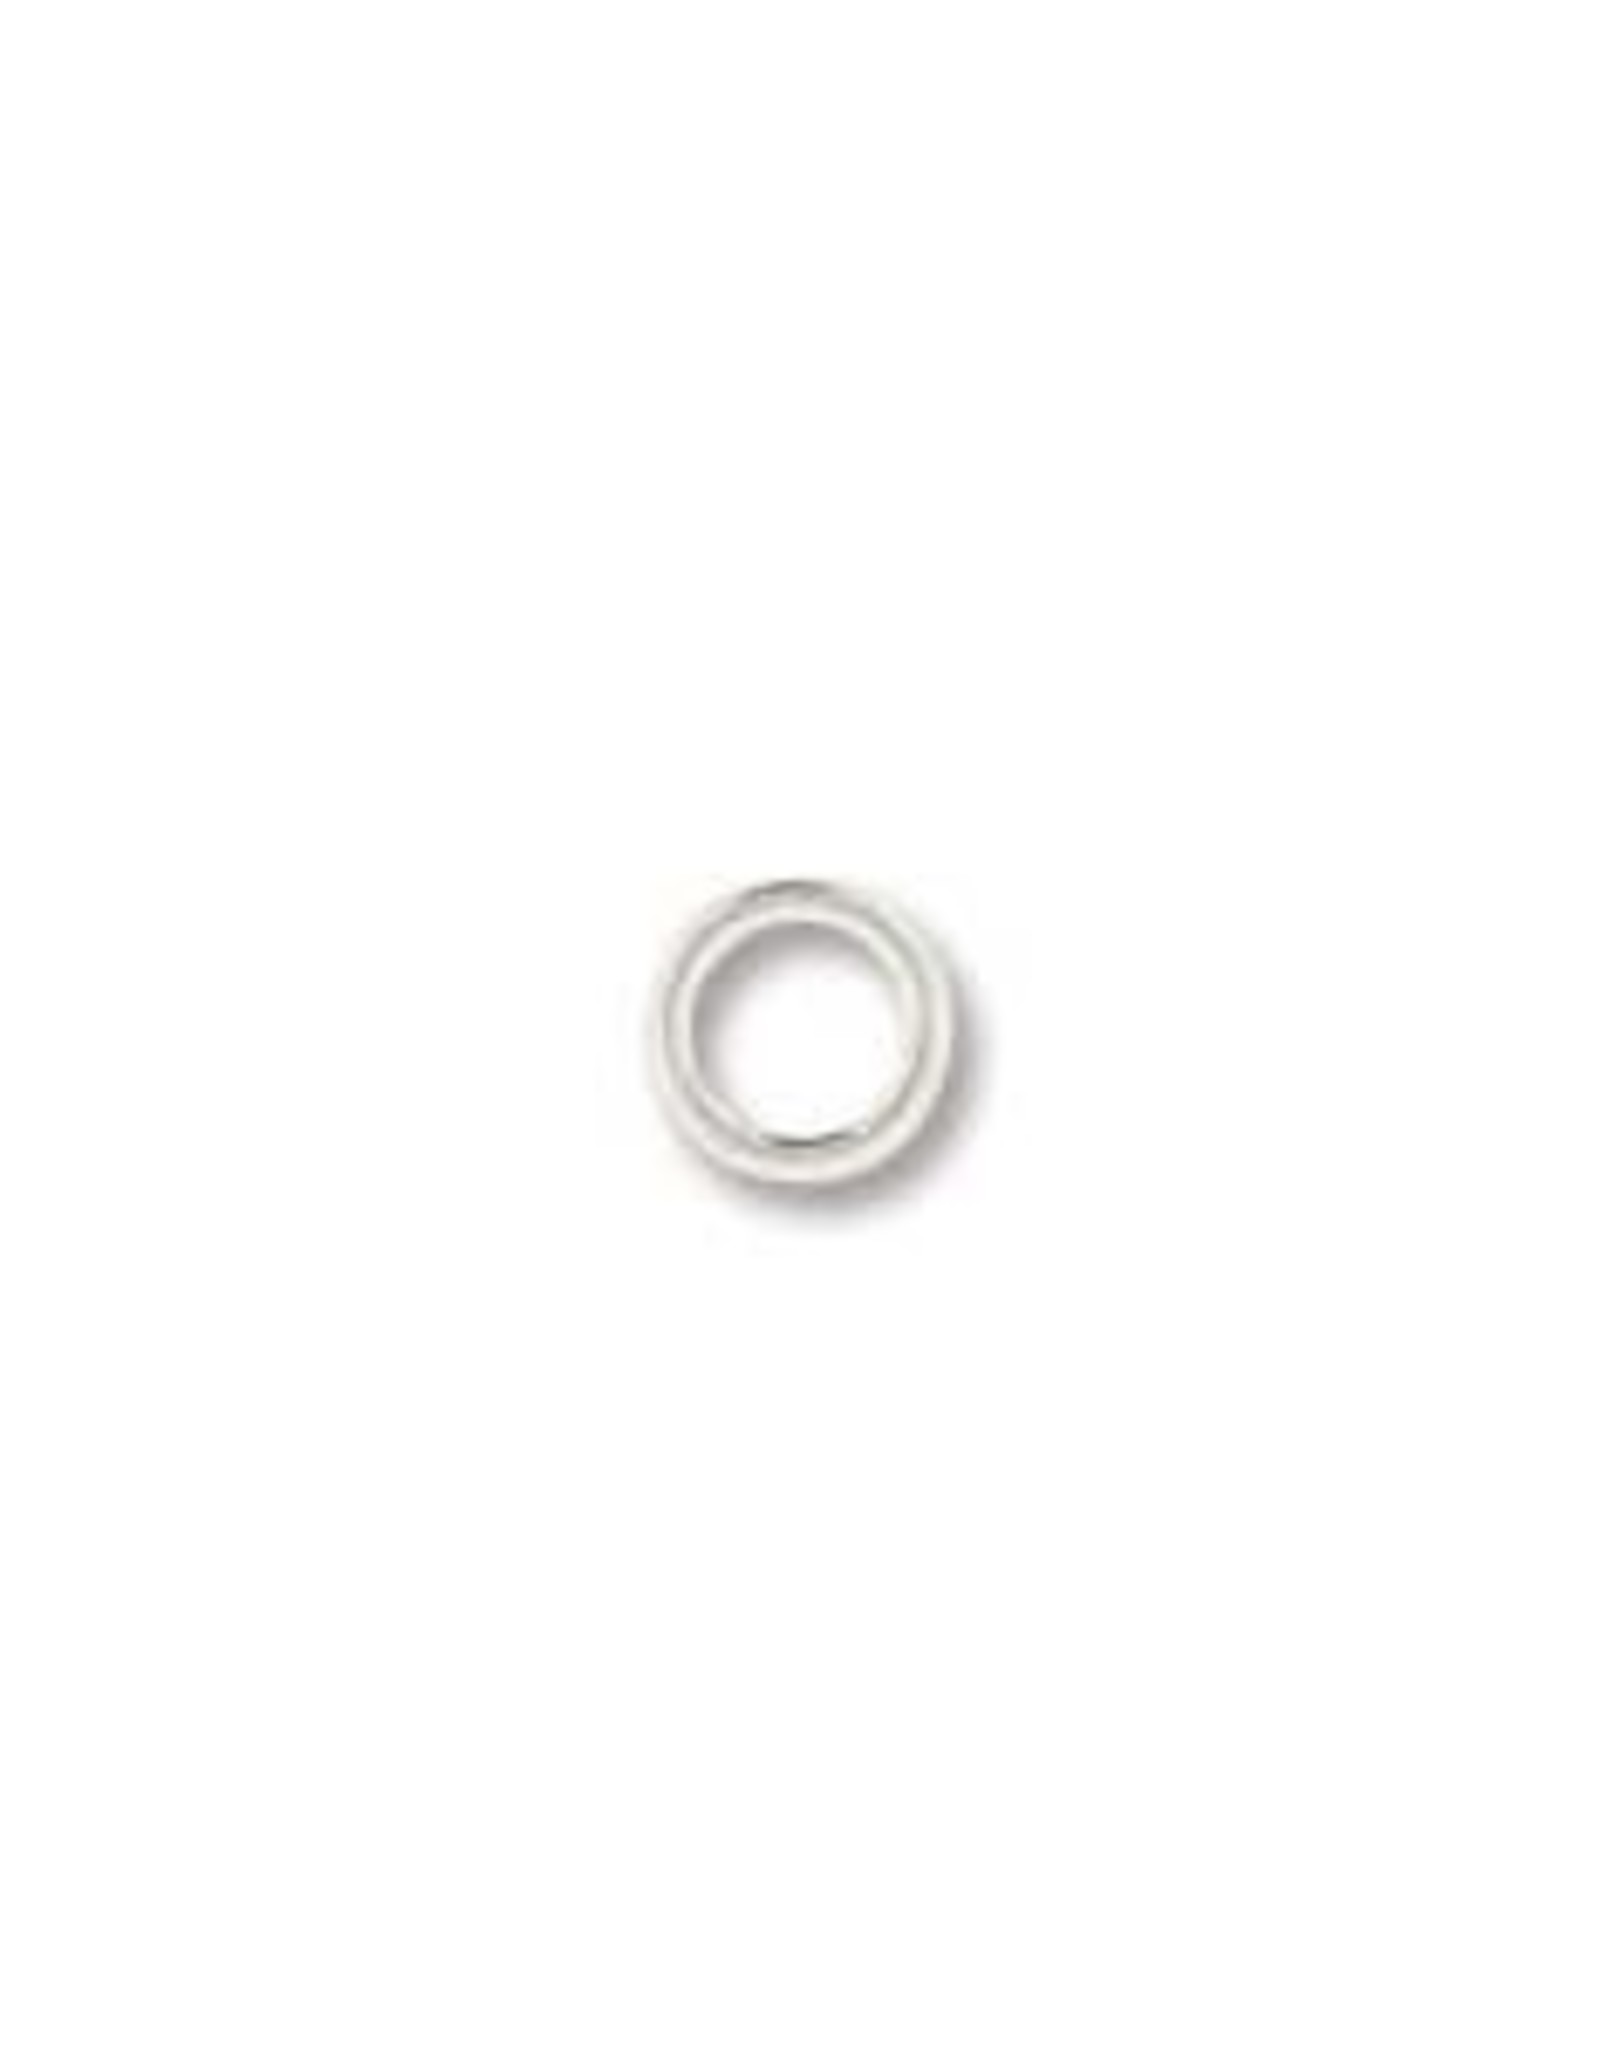 4mm Jumpring Silver Plate Qty 144